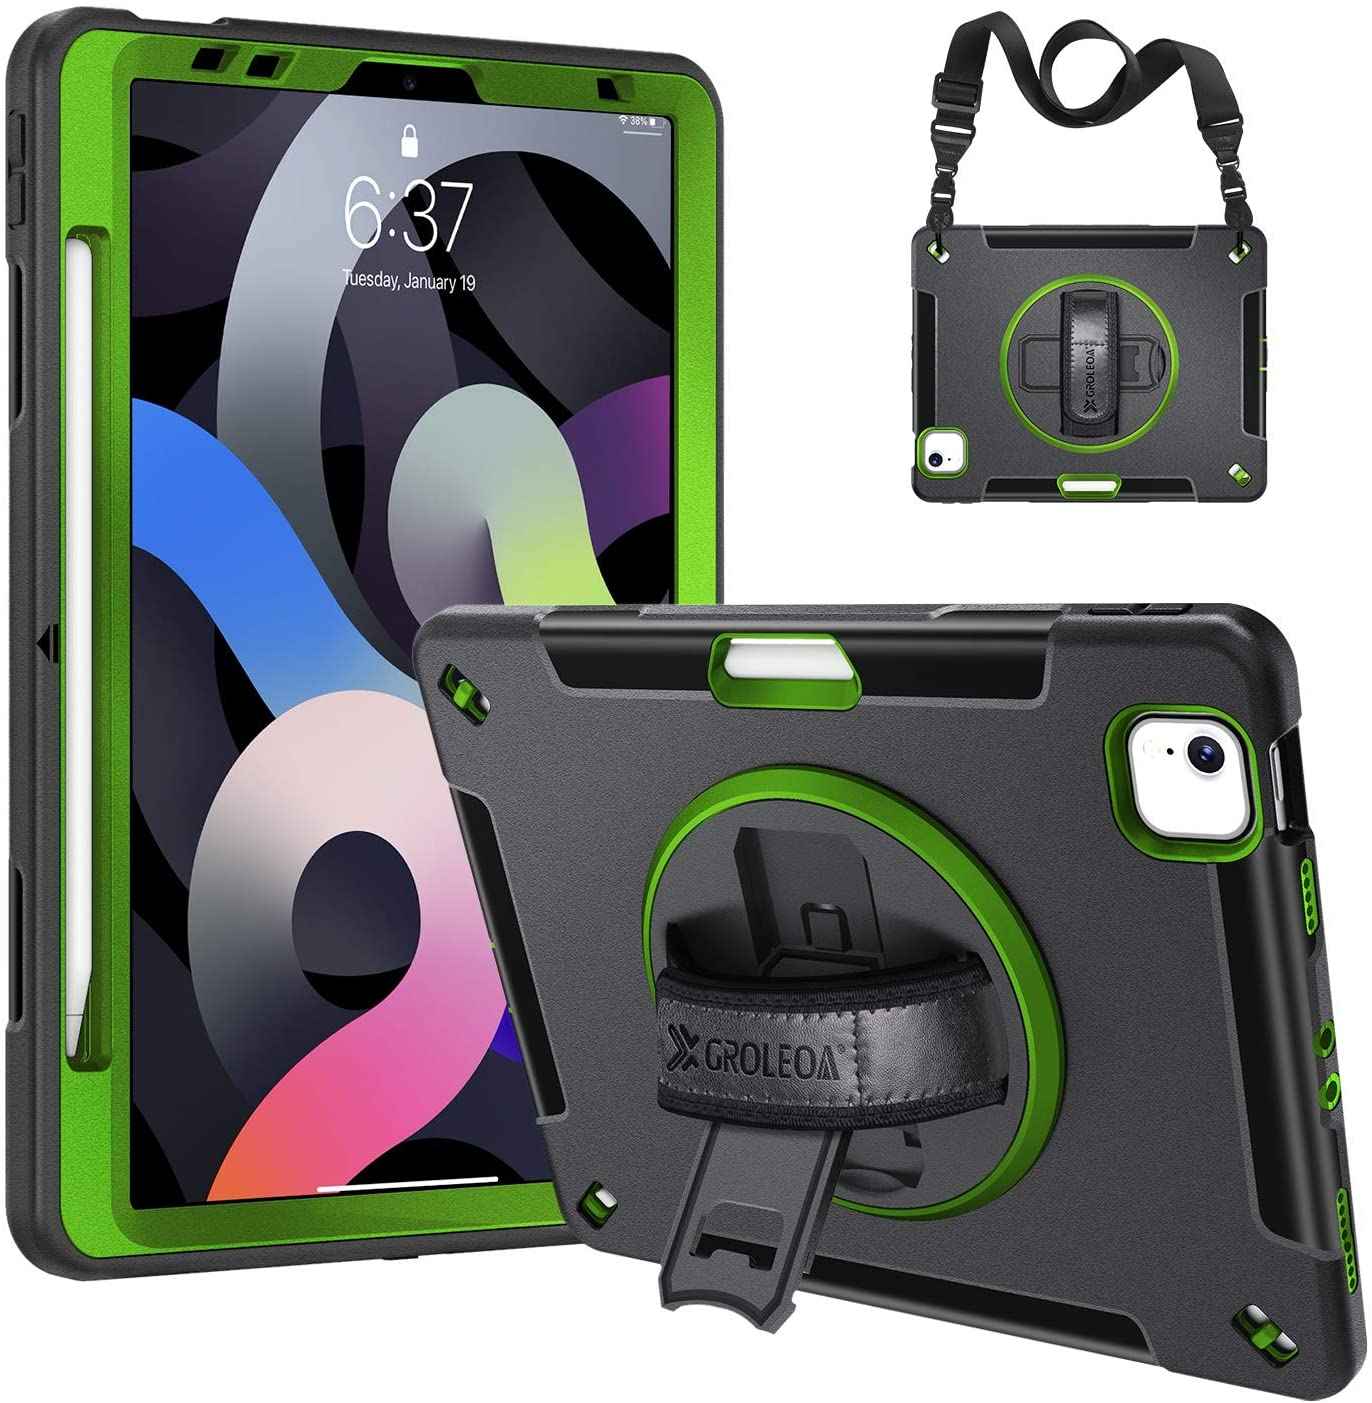 GROLEOA iPad Air 4th Generation 2020 with Pencil Holder Support Charging, 360 Rotating Stand Handle Shoulder Strap Heavy Duty Rugged Protective Shockproof Tablet Case for iPad Air 4 10.9 inch-Green